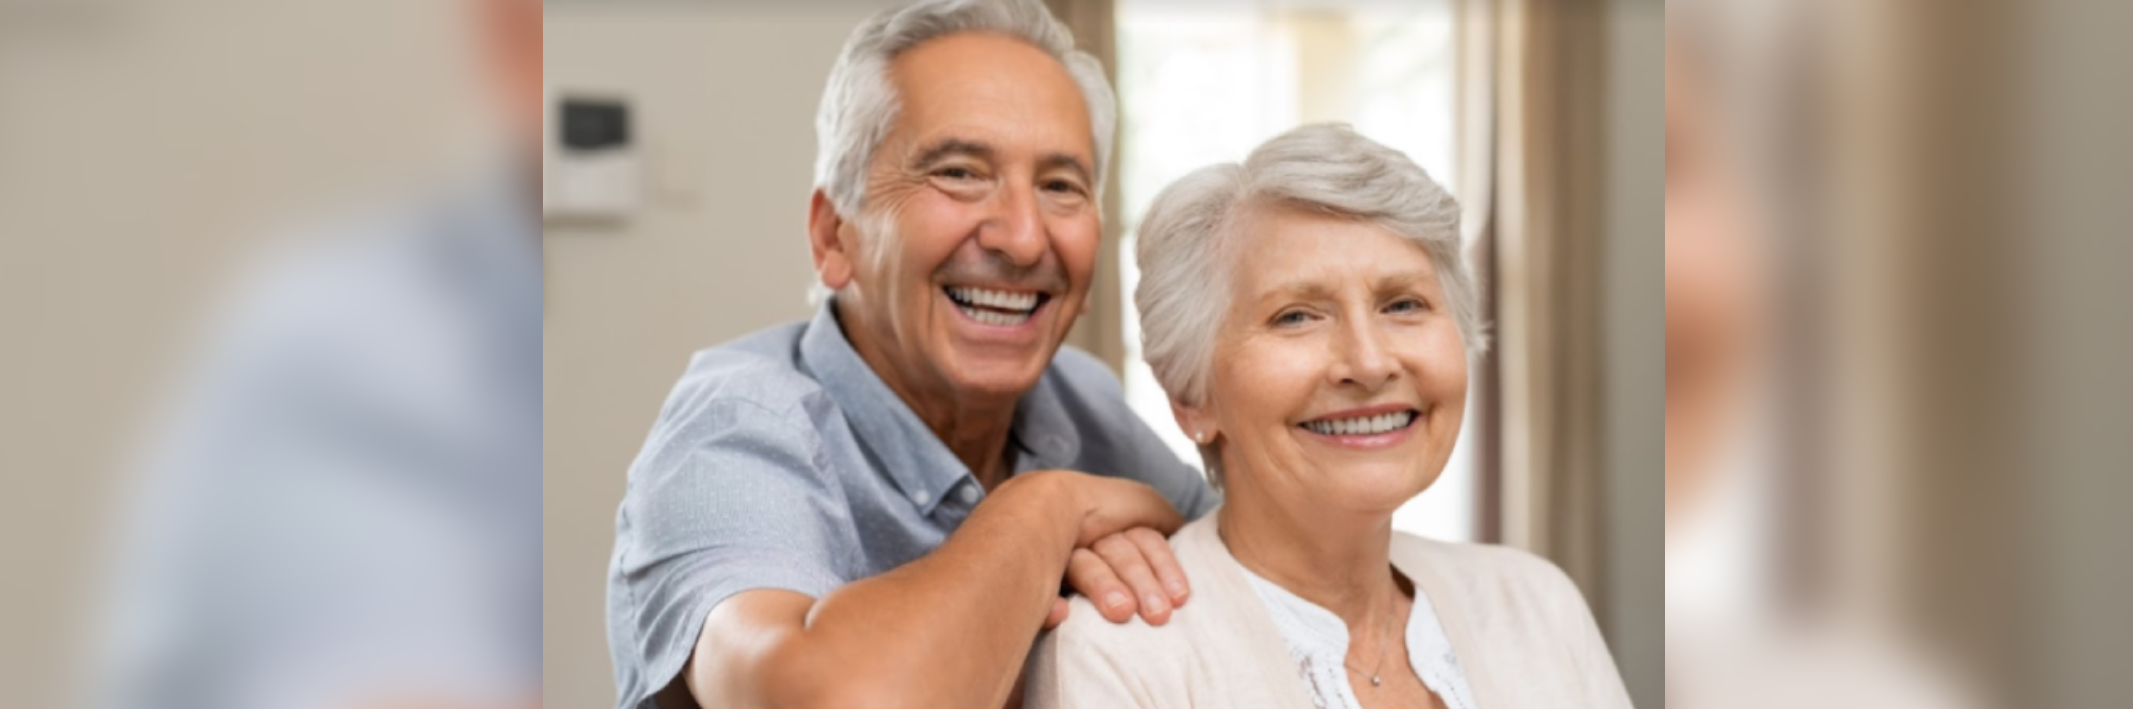 Dentures Can Replace Missing Teeth at Any Age